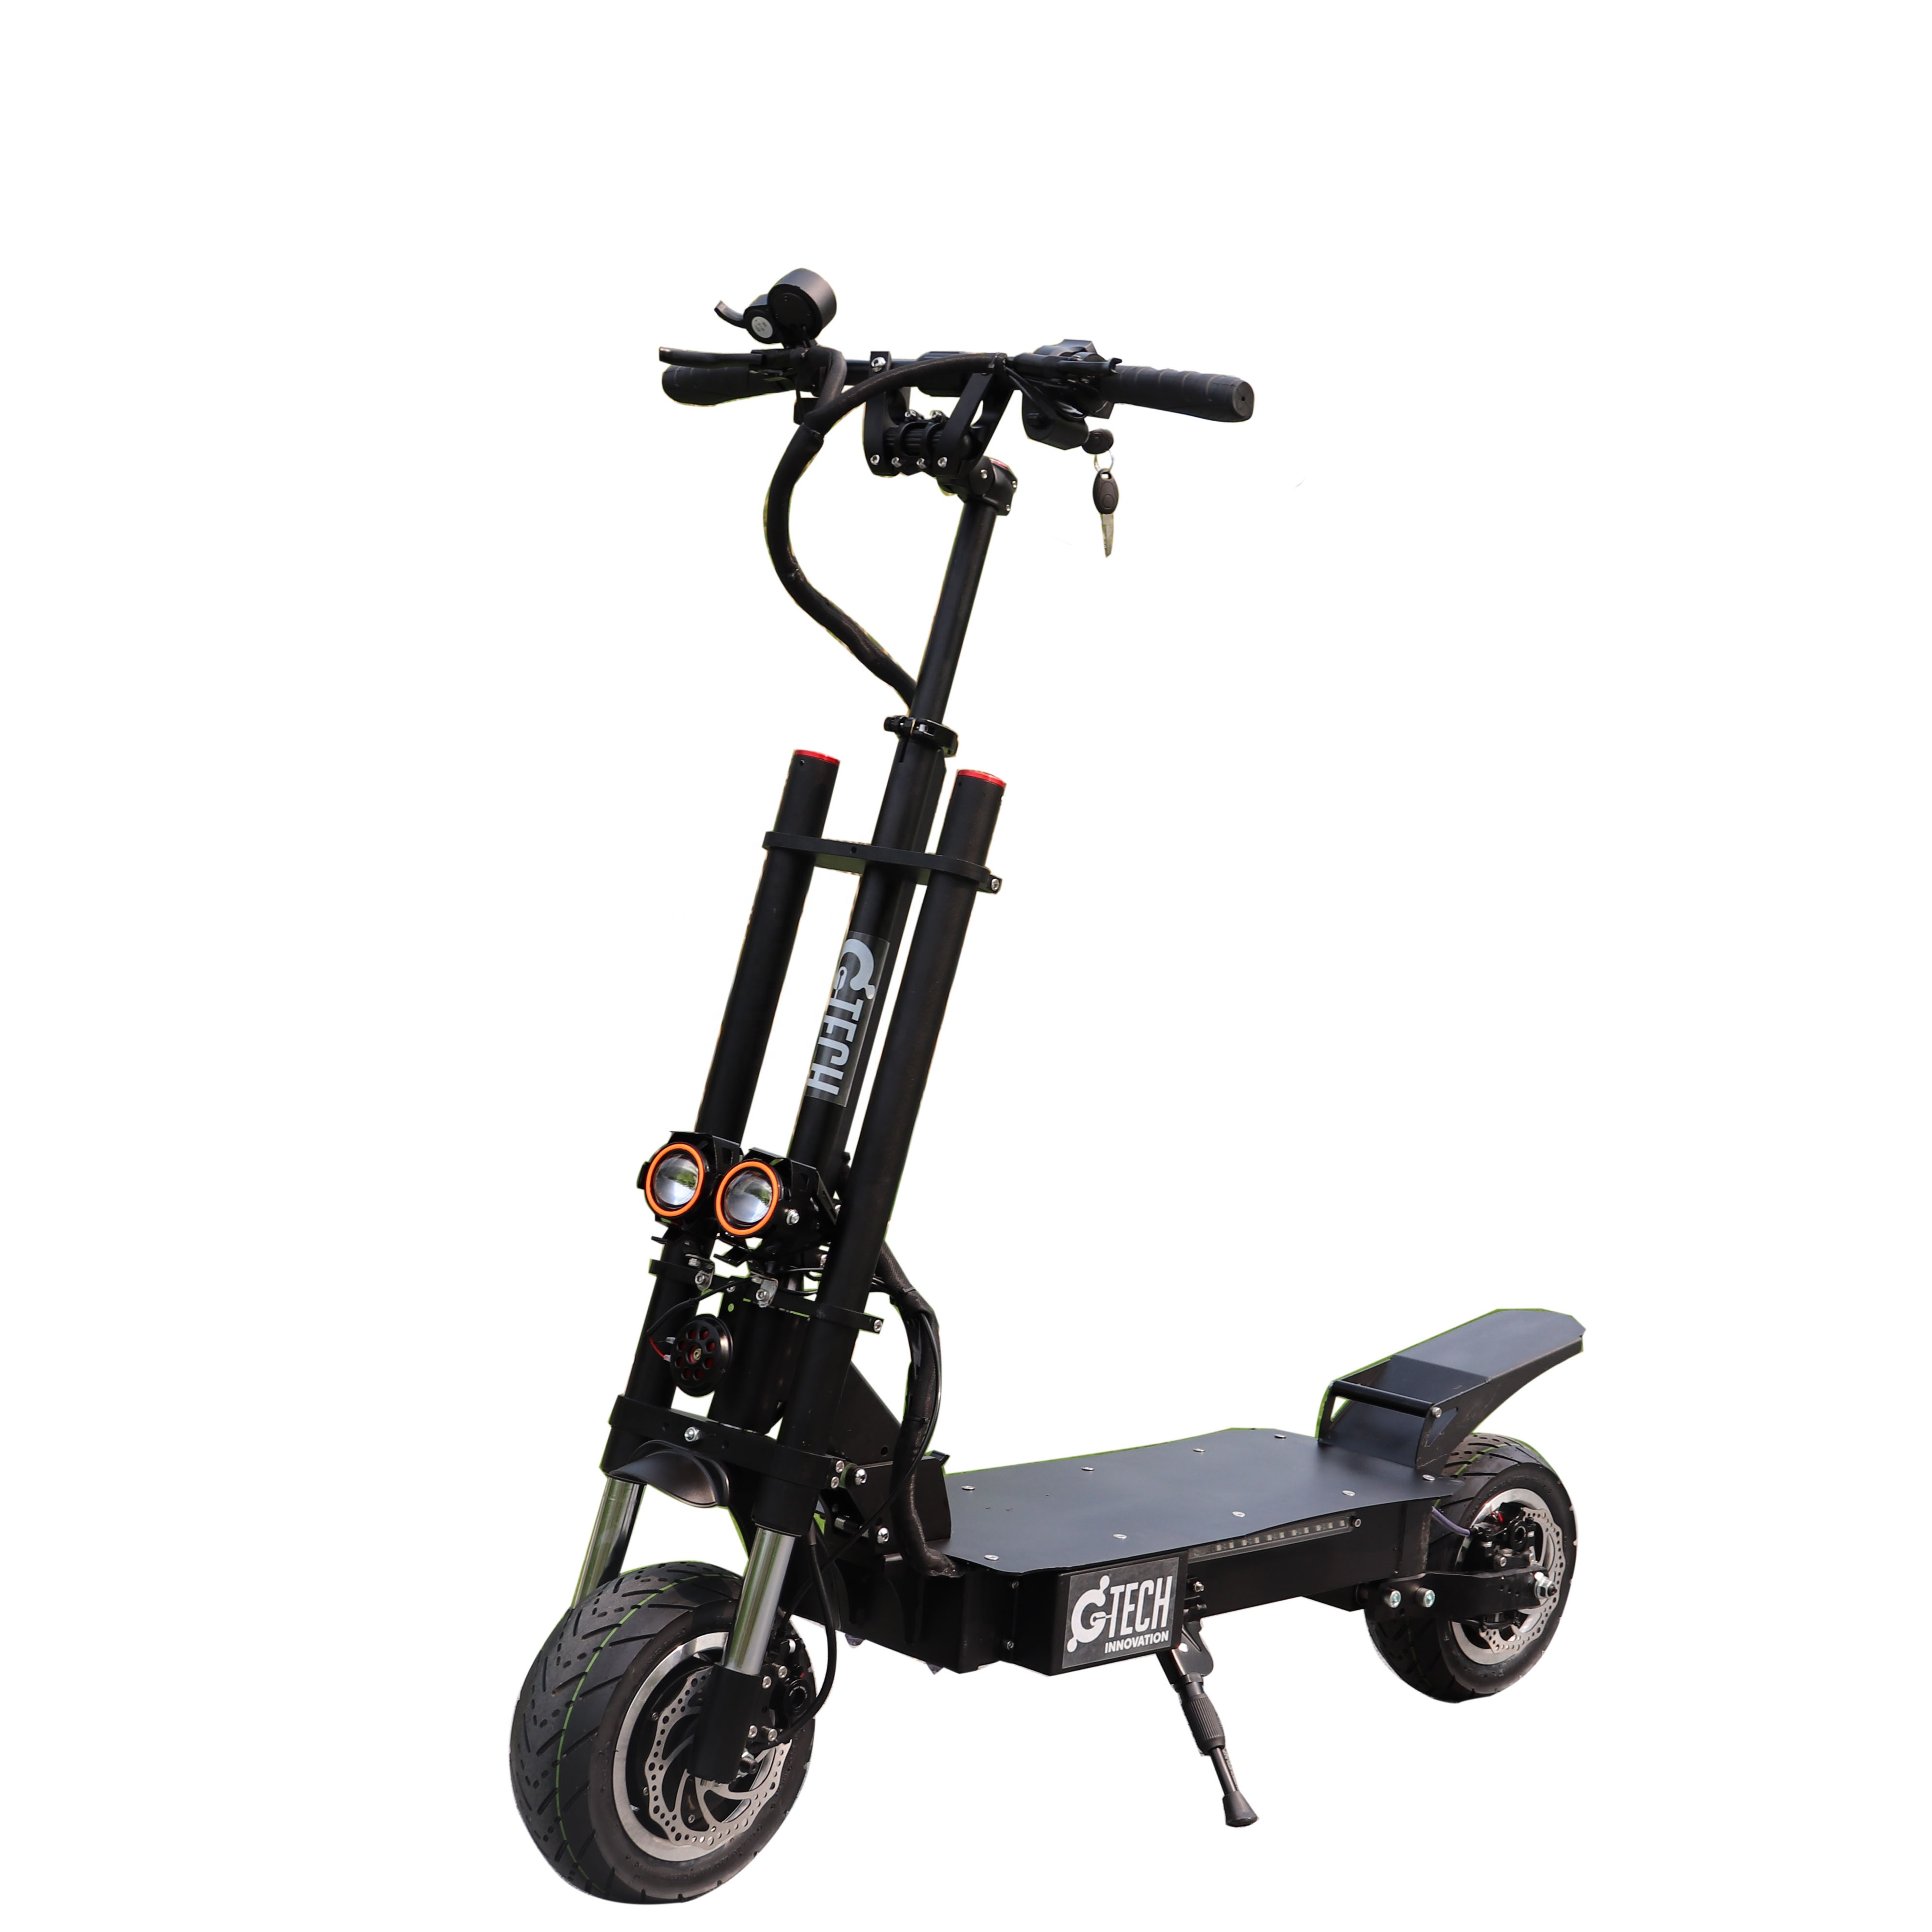 Chargeur Batterie Scooter pas cher